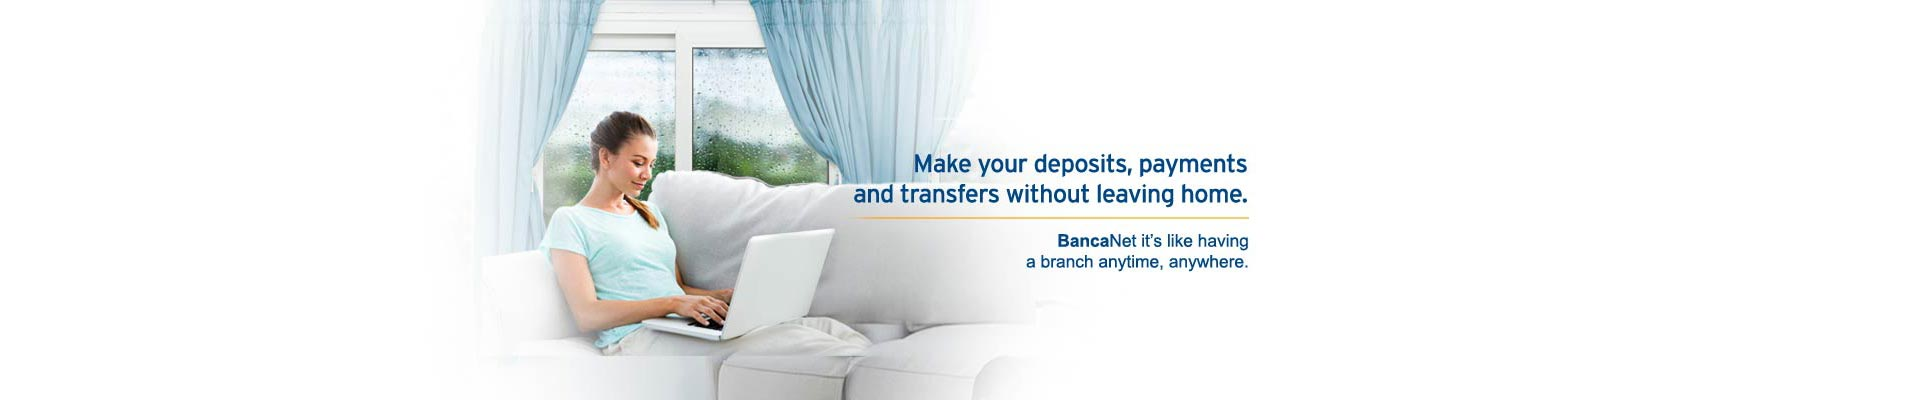 BancaNet is having a branch right in house